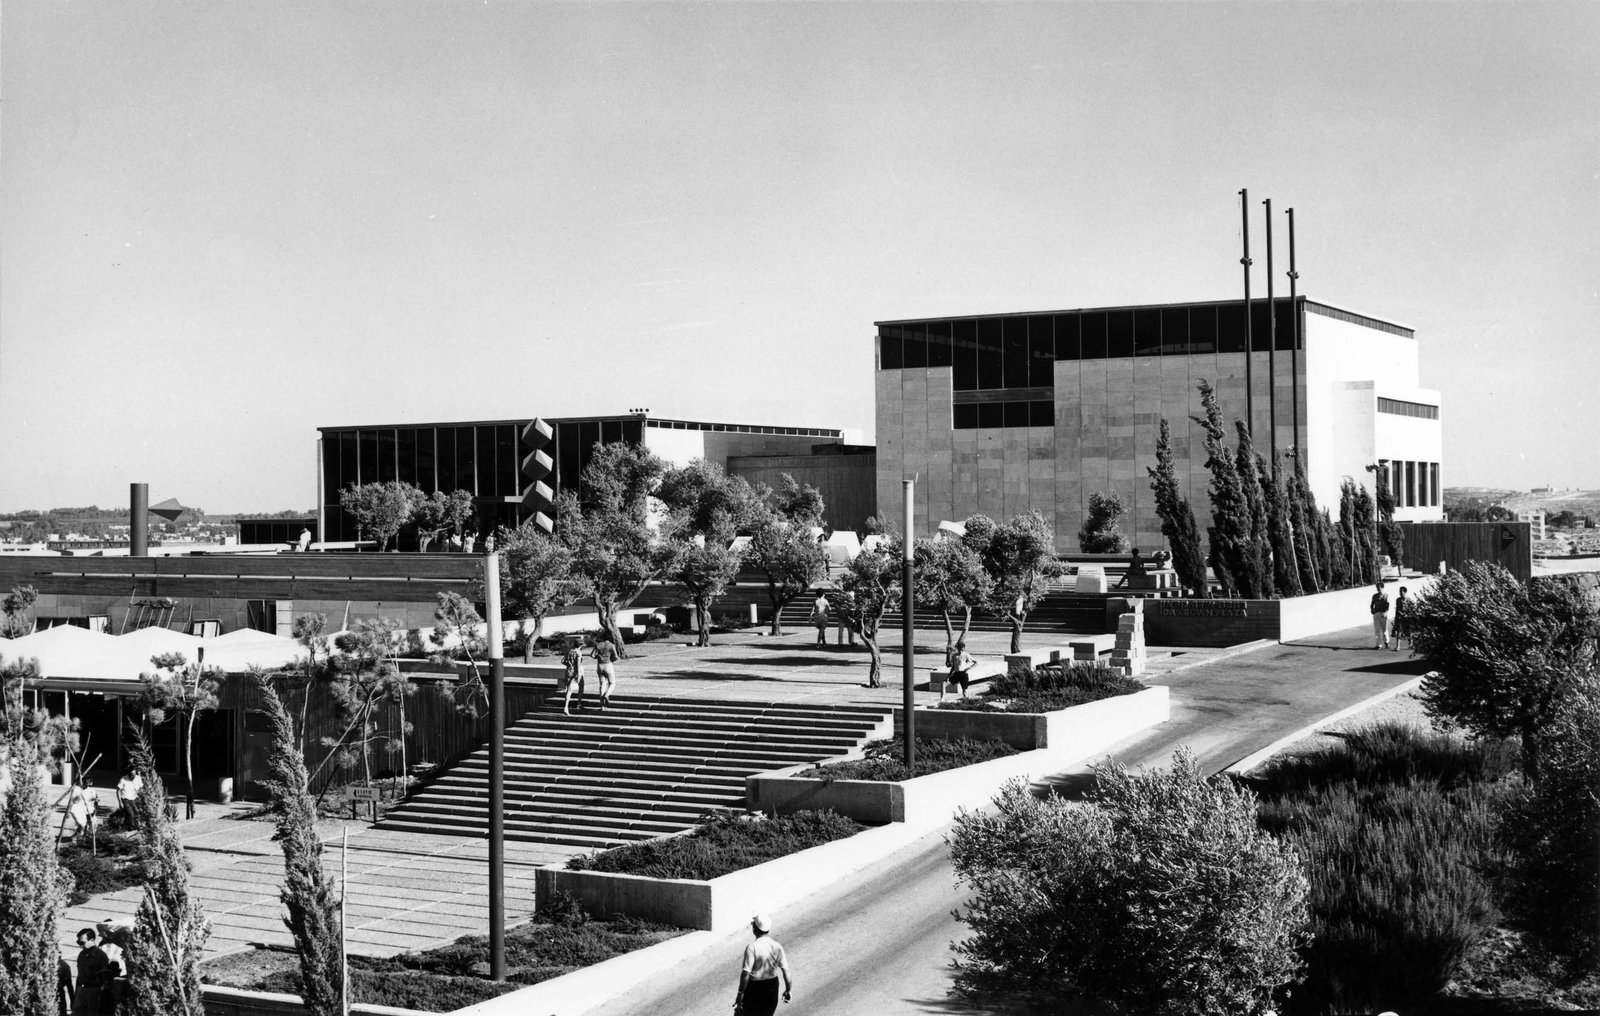 """""""In 1965, Israel was barely 17 years old,"""" Snyder says. """"Teddy Kollek had barely become Jerusalem's mayor, and was determined to see it become a modern western capital like the great cultural capitals of Europe, and opening the Israel Museum that year was part of his vision.""""  This is What Design Looked Like in Israel in 1965 by Allie Weiss from Best of #ModernMonday: What Makes a Building Iconic?"""